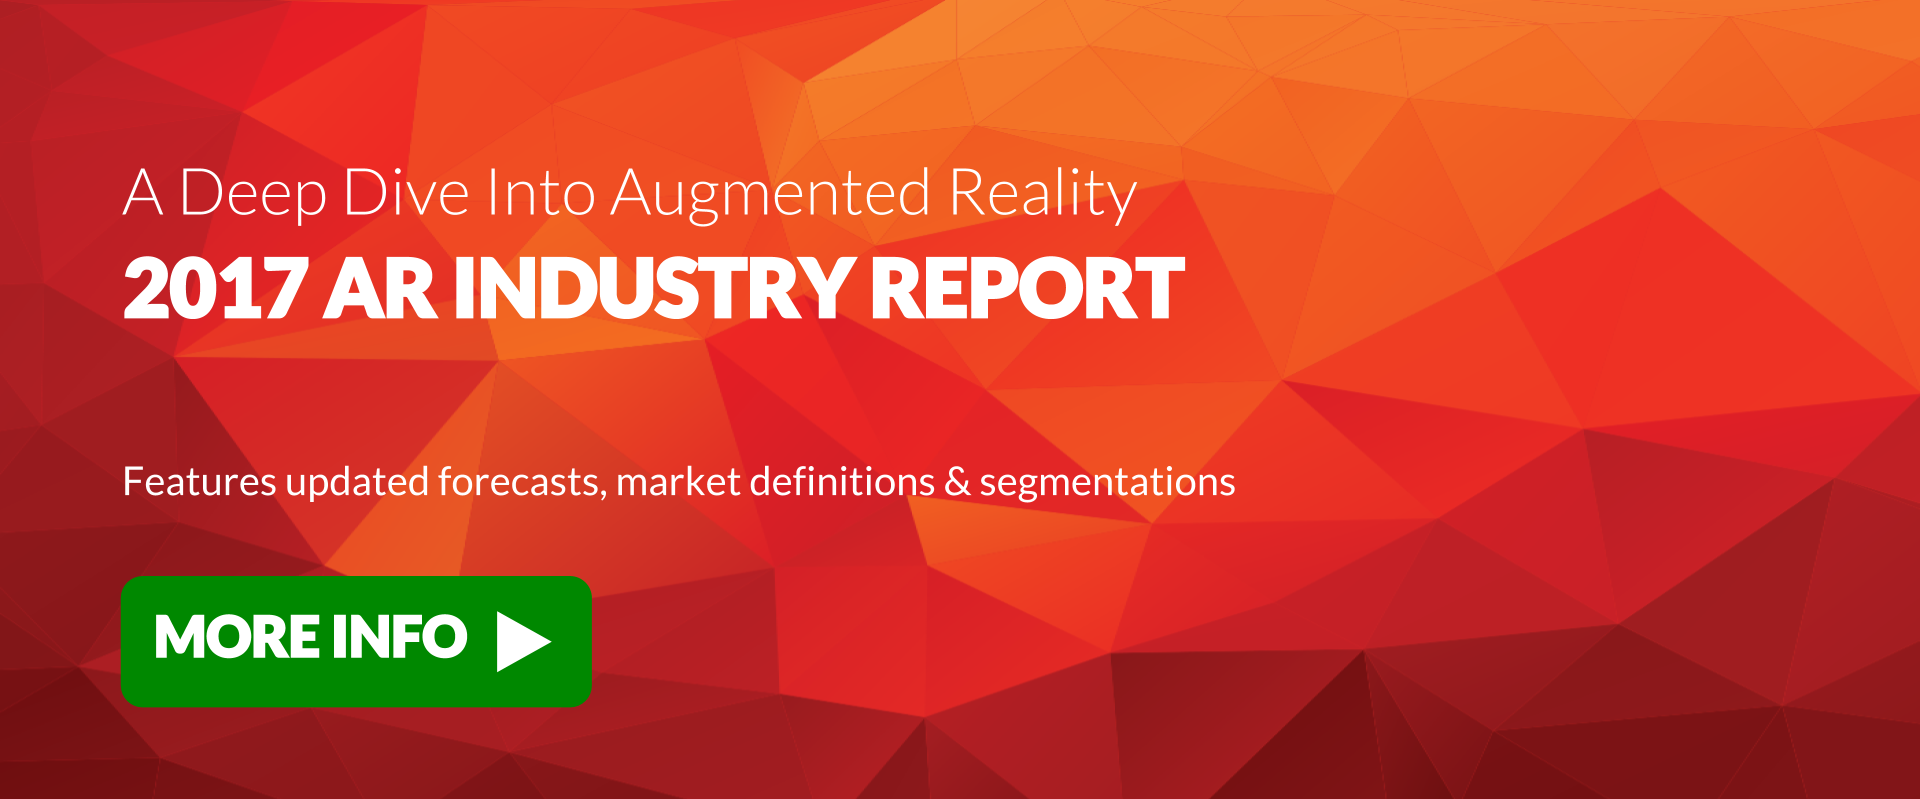 augmented virtual reality report 2017 pdf